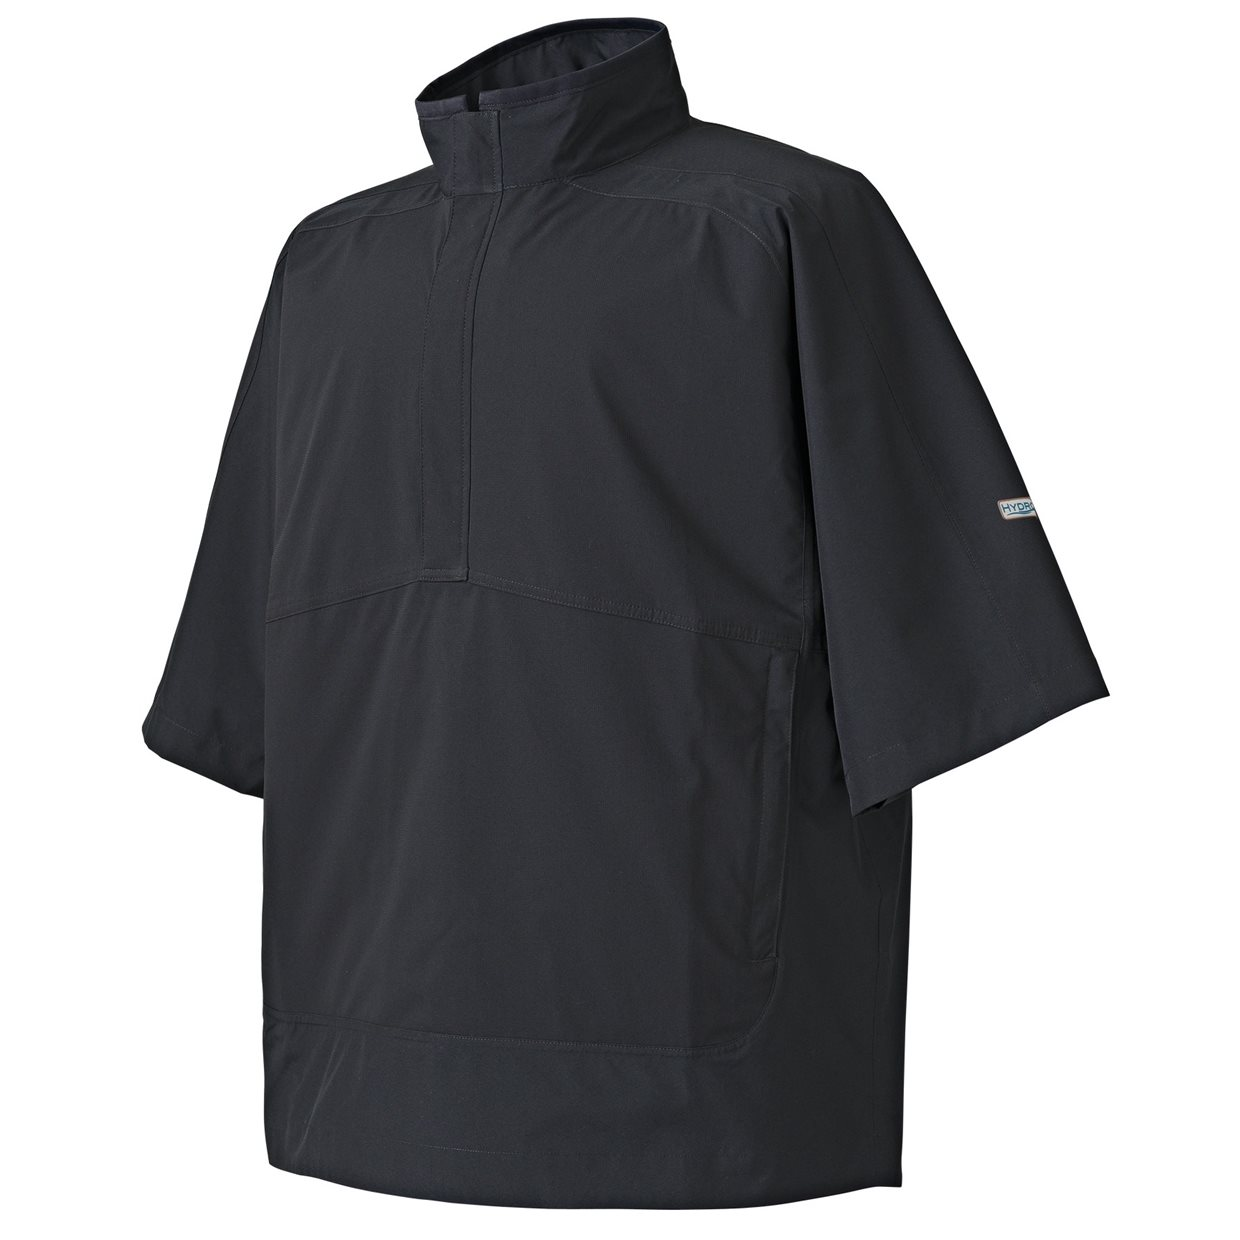 Footjoy Dryjoys Fj Hydrolite S S Rainwear Apparel At